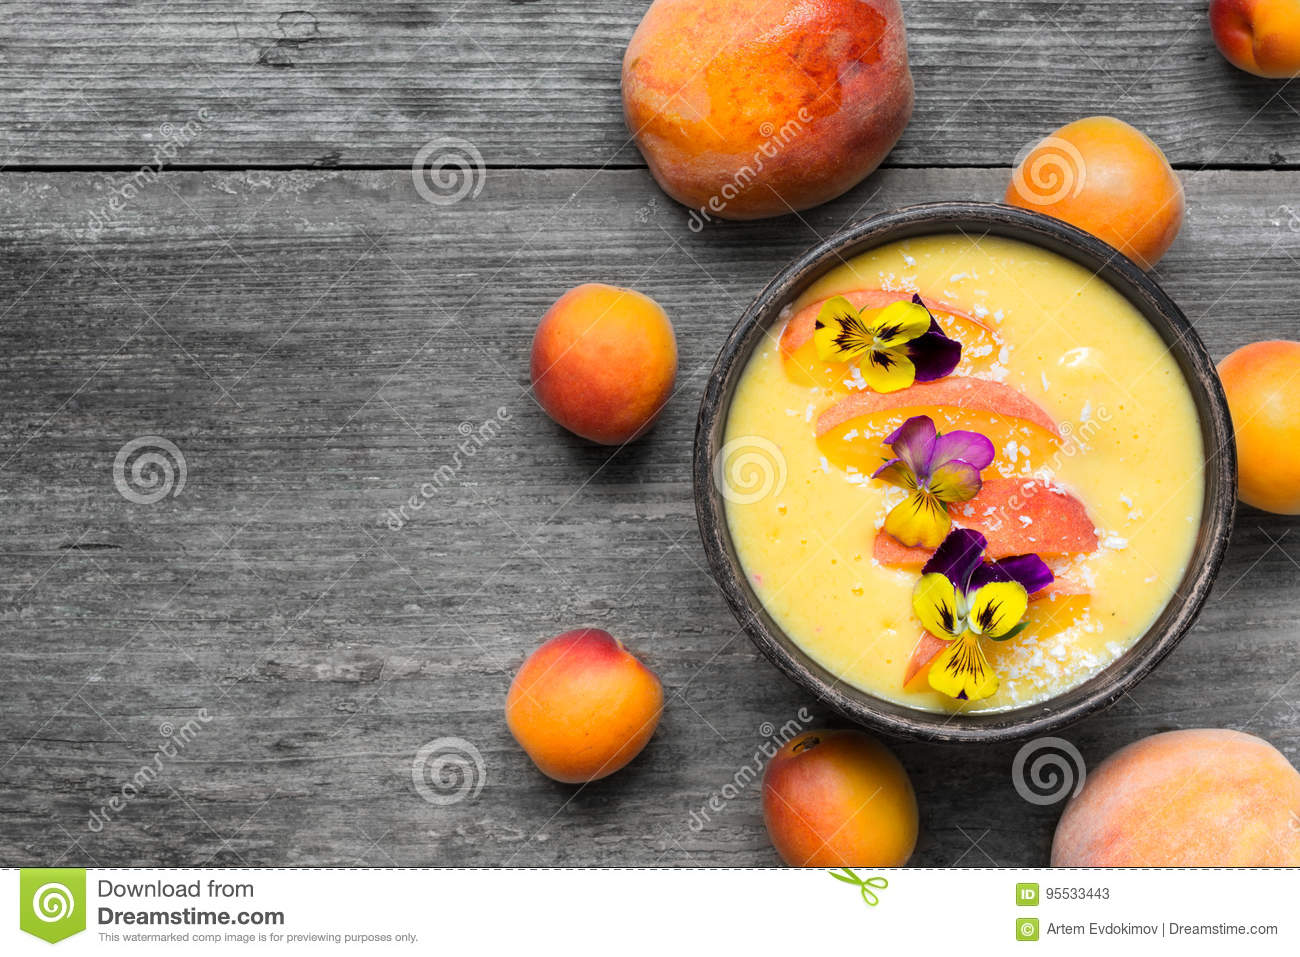 Bowl of homemade yellow smoothie with fresh mango, peaches and apricots